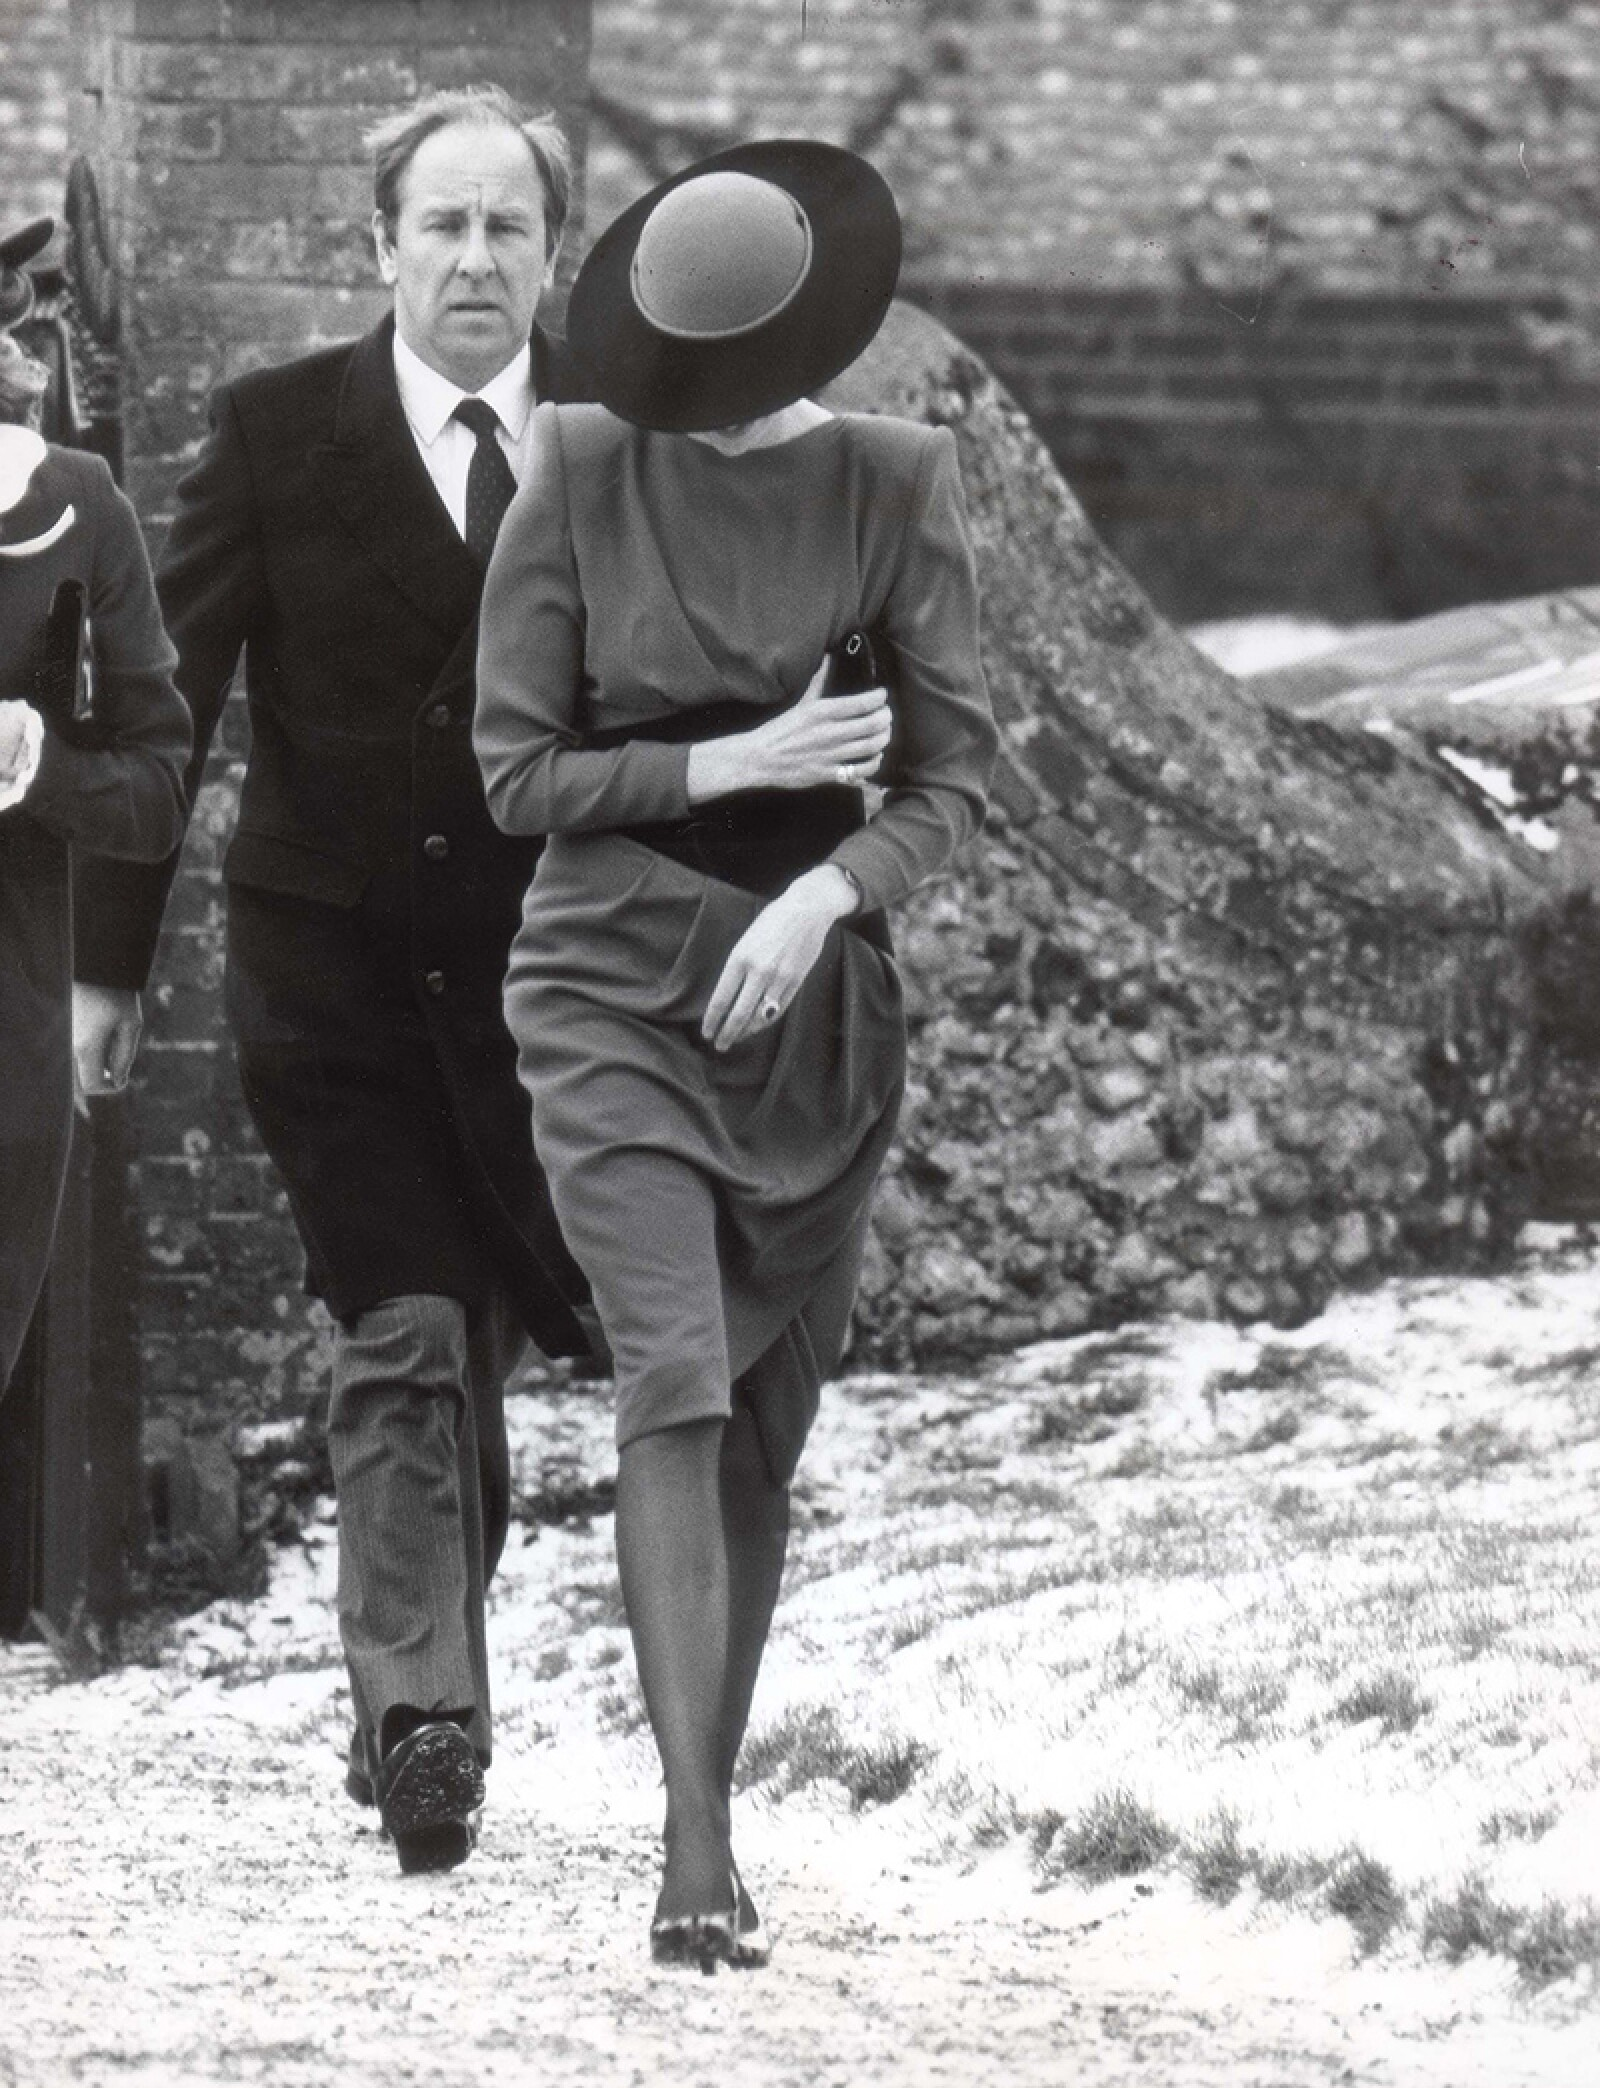 Diana - Princess Of Wales - February 1985 Head Dow Against The Biting Wind The Princess Of Wales Attends A Private Wedding At Foulsham In Norfolk Dressed In Prince Harry's Christening Outfit....royalty Princess Diana Of Wales (died 31/8/1997)